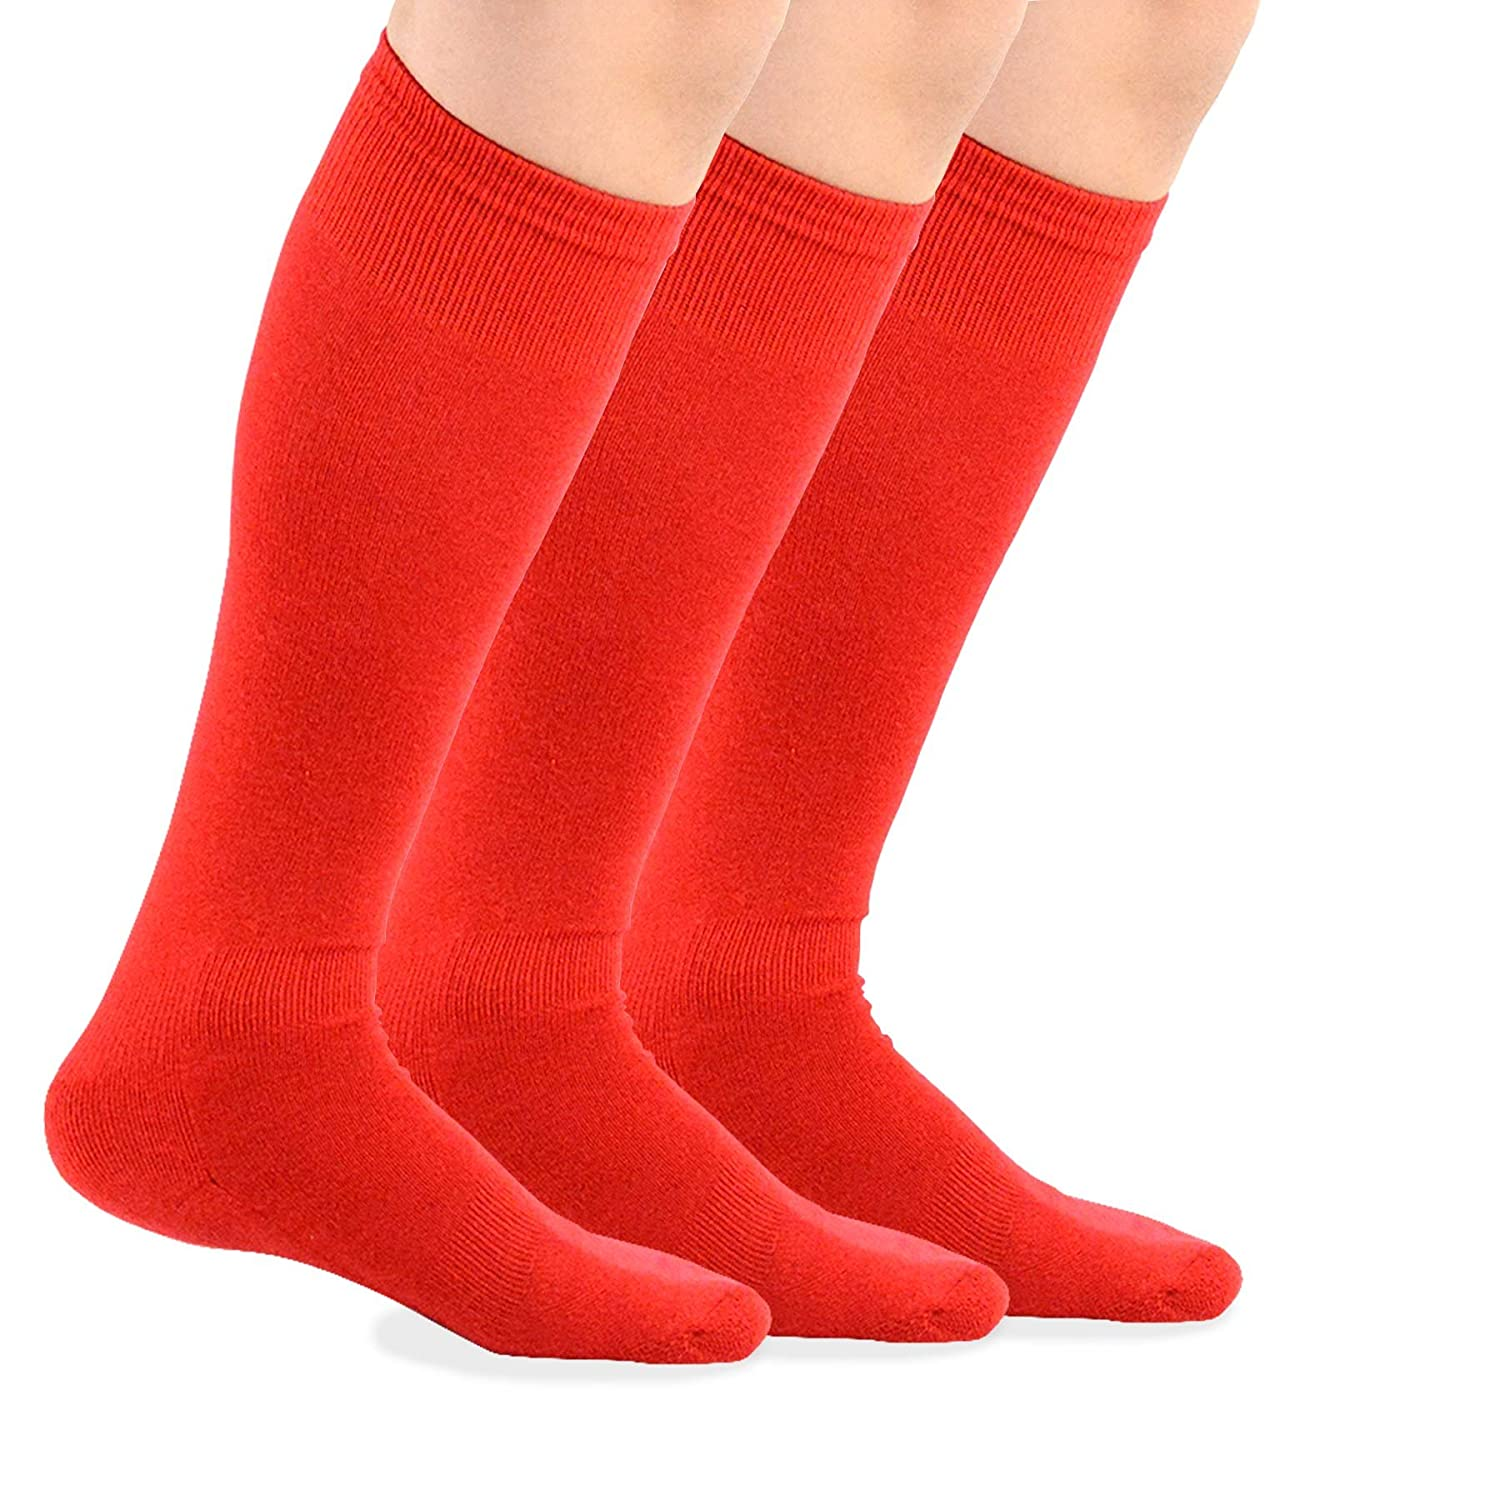 TeeHee Bamboo All Sports Half Cushion Socks with Arch Support 3-Pairs Pack Soxnet Inc